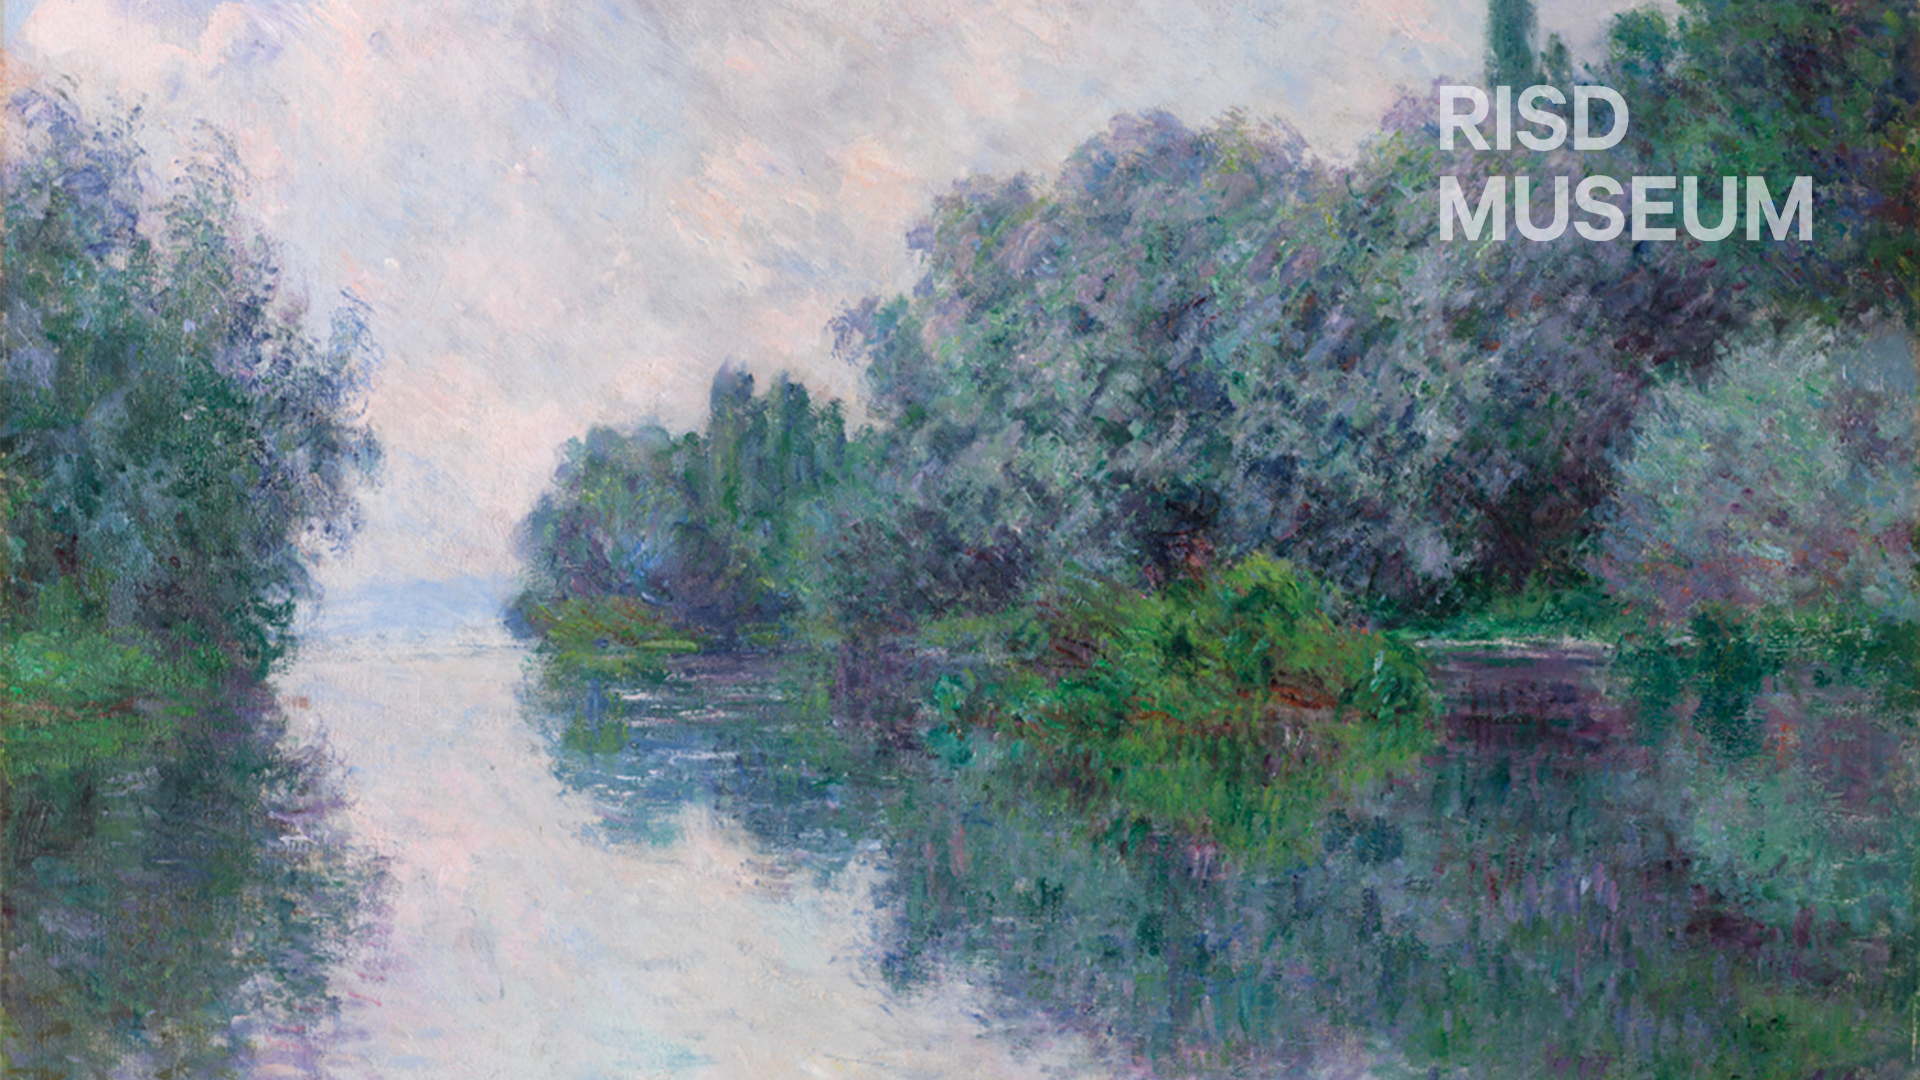 Zoom Background featuring The Seine at Giverny by Claude Monet